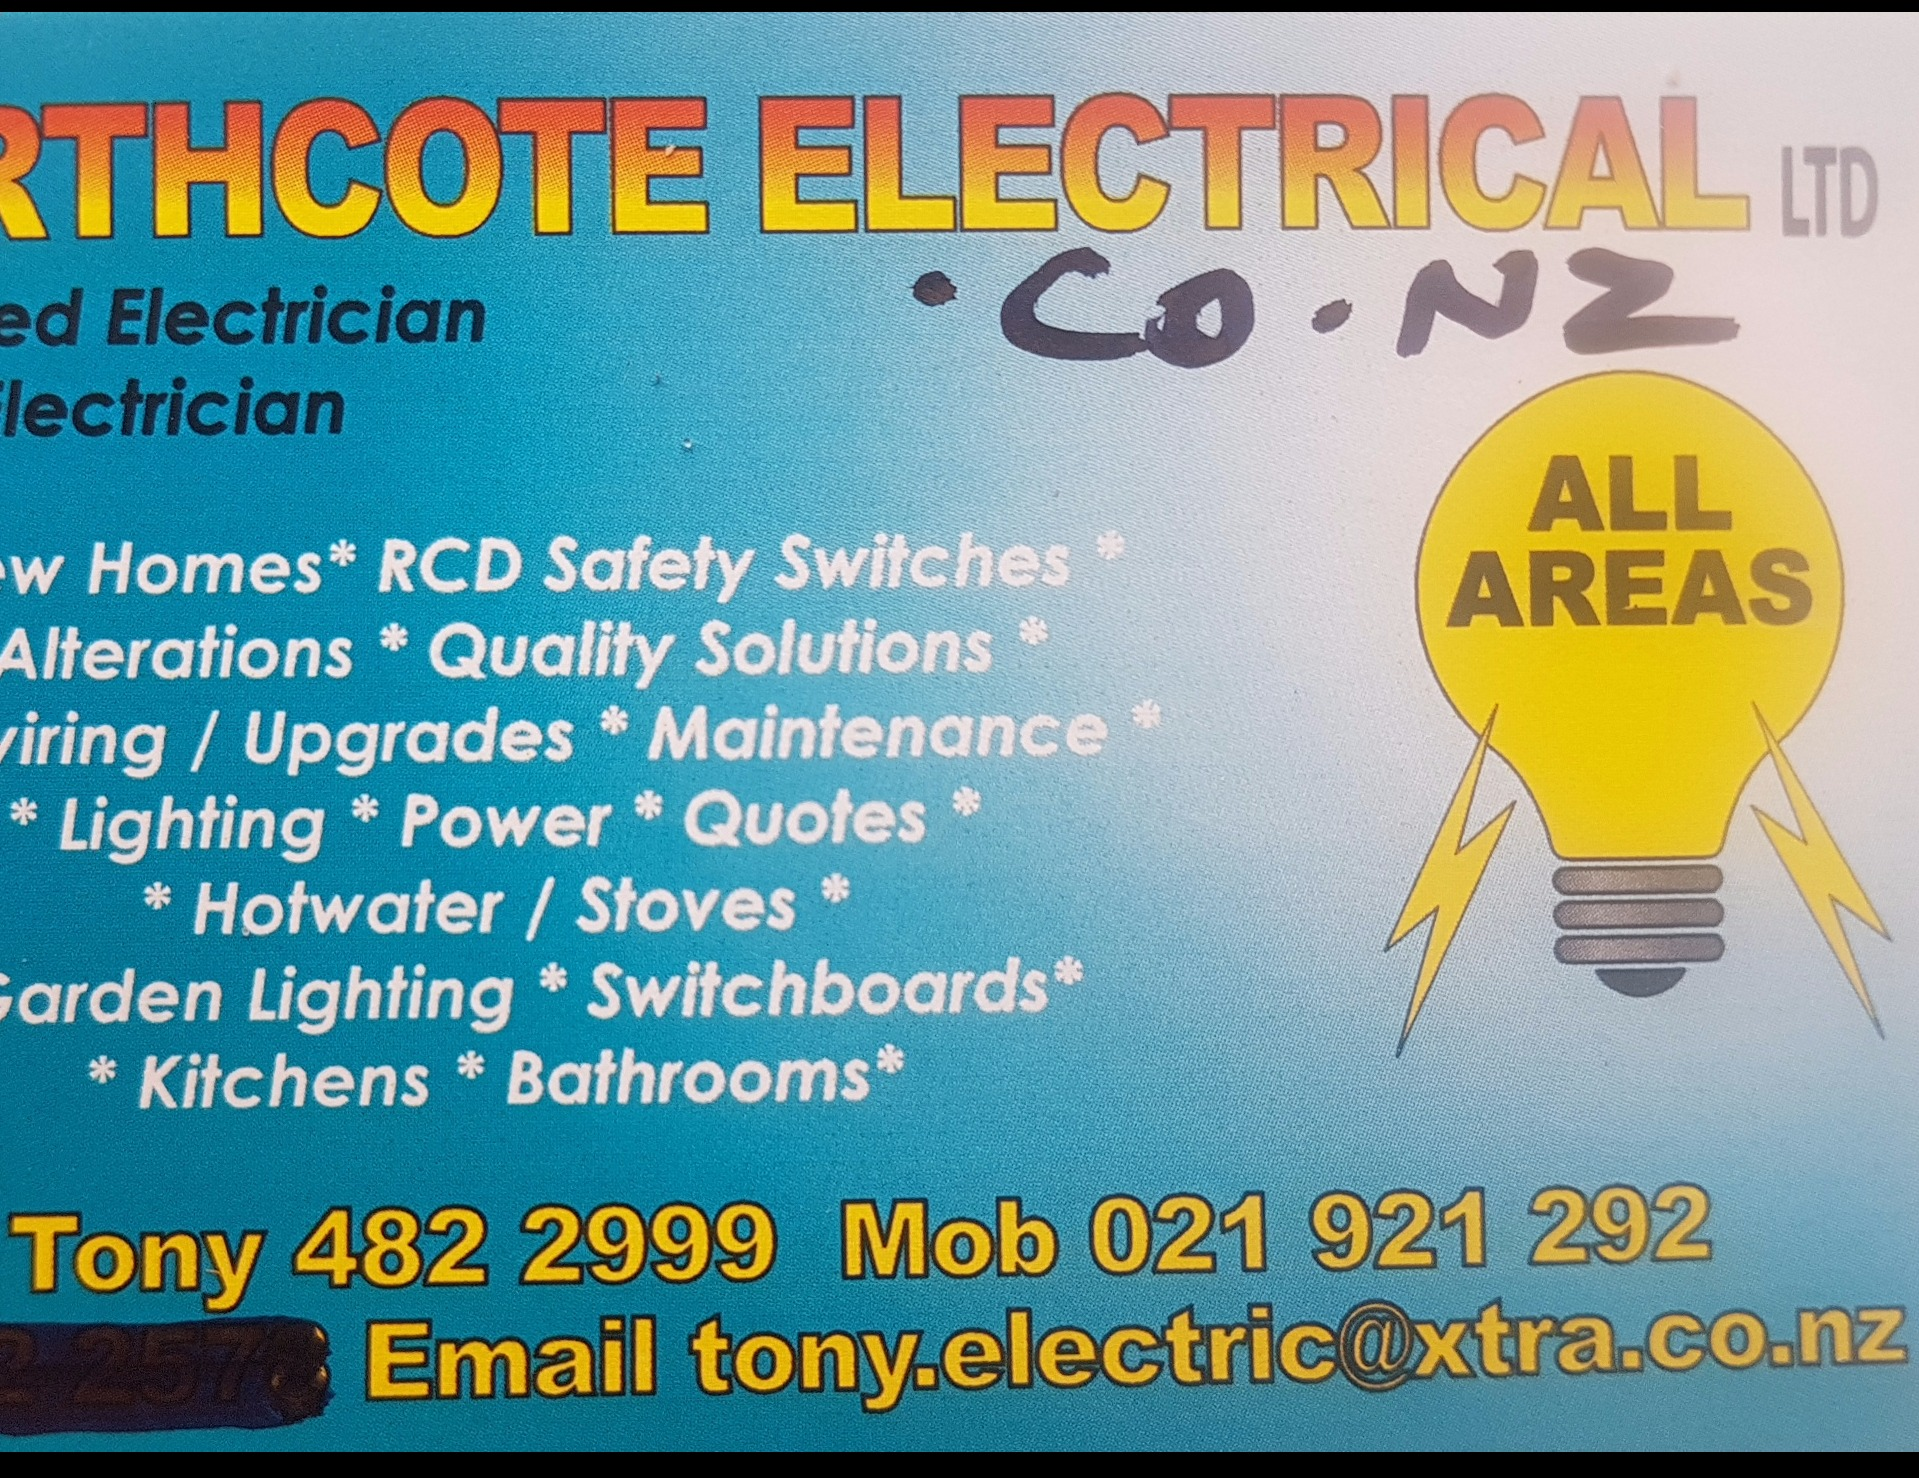 Northcote Electrical Ltd